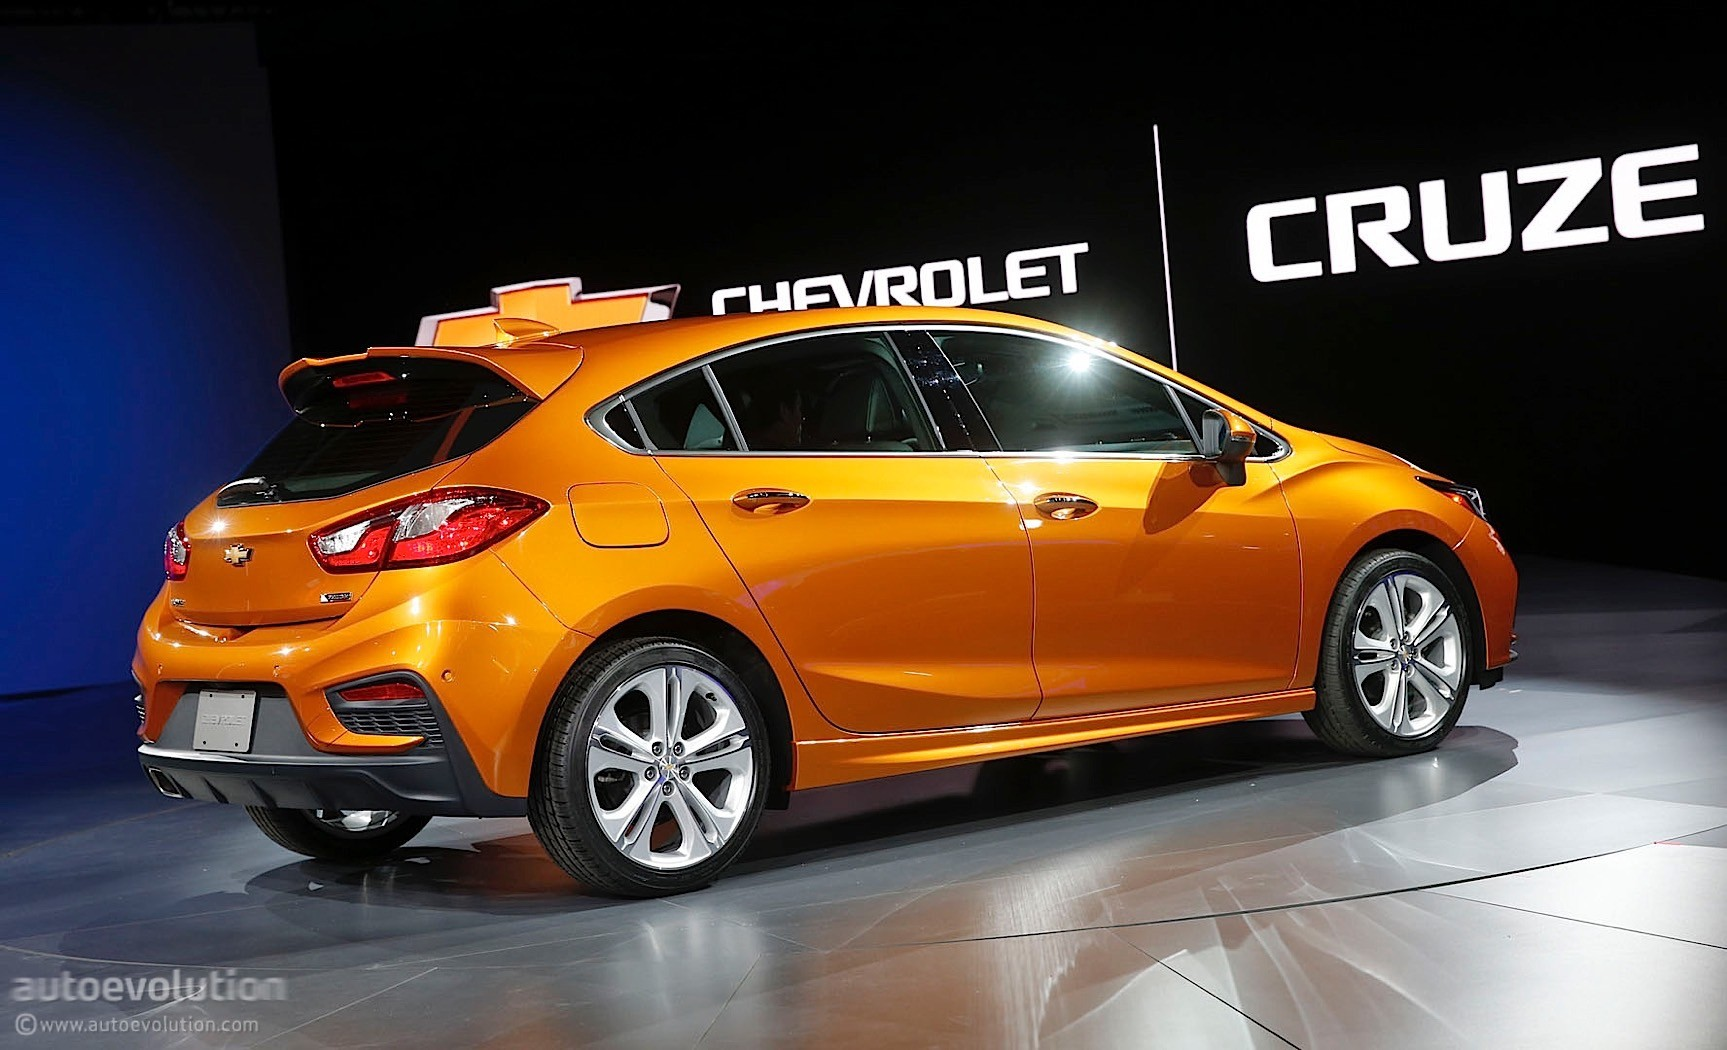 2017 Chevrolet Cruze Hatchback Priced From $22,190 ...